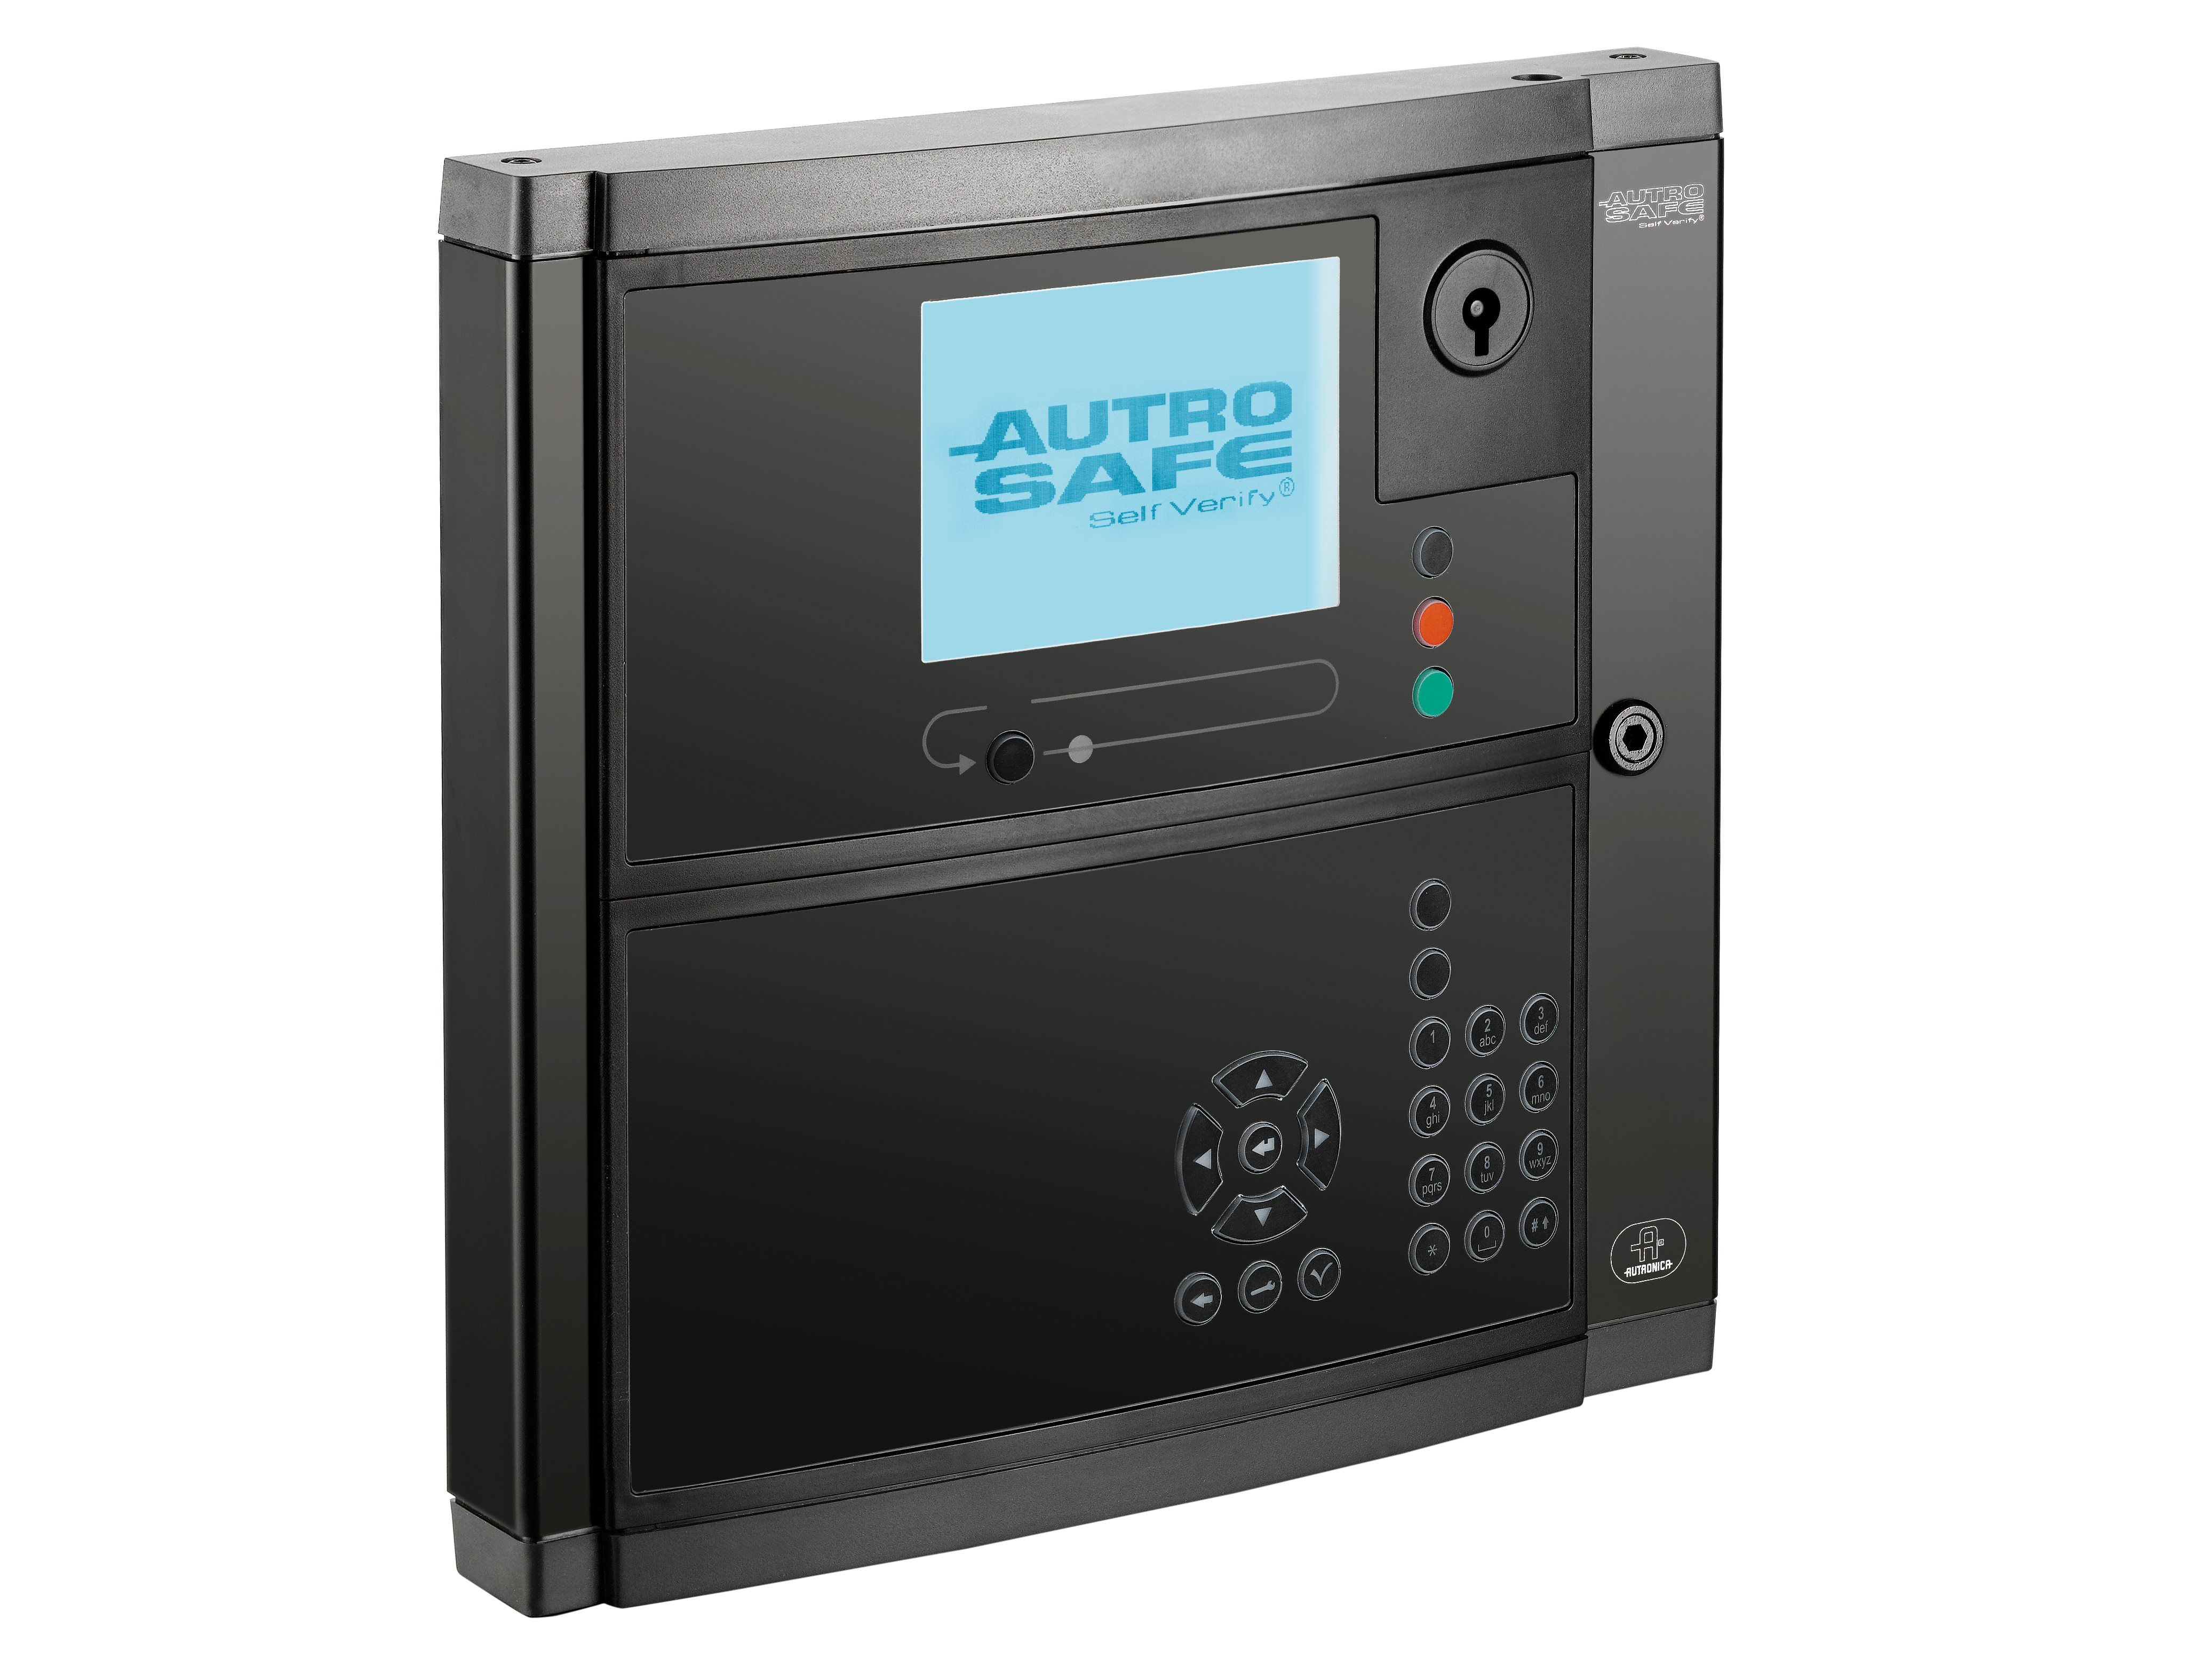 Autrosafe 4 Fire Detection System Fire And Gas Detection